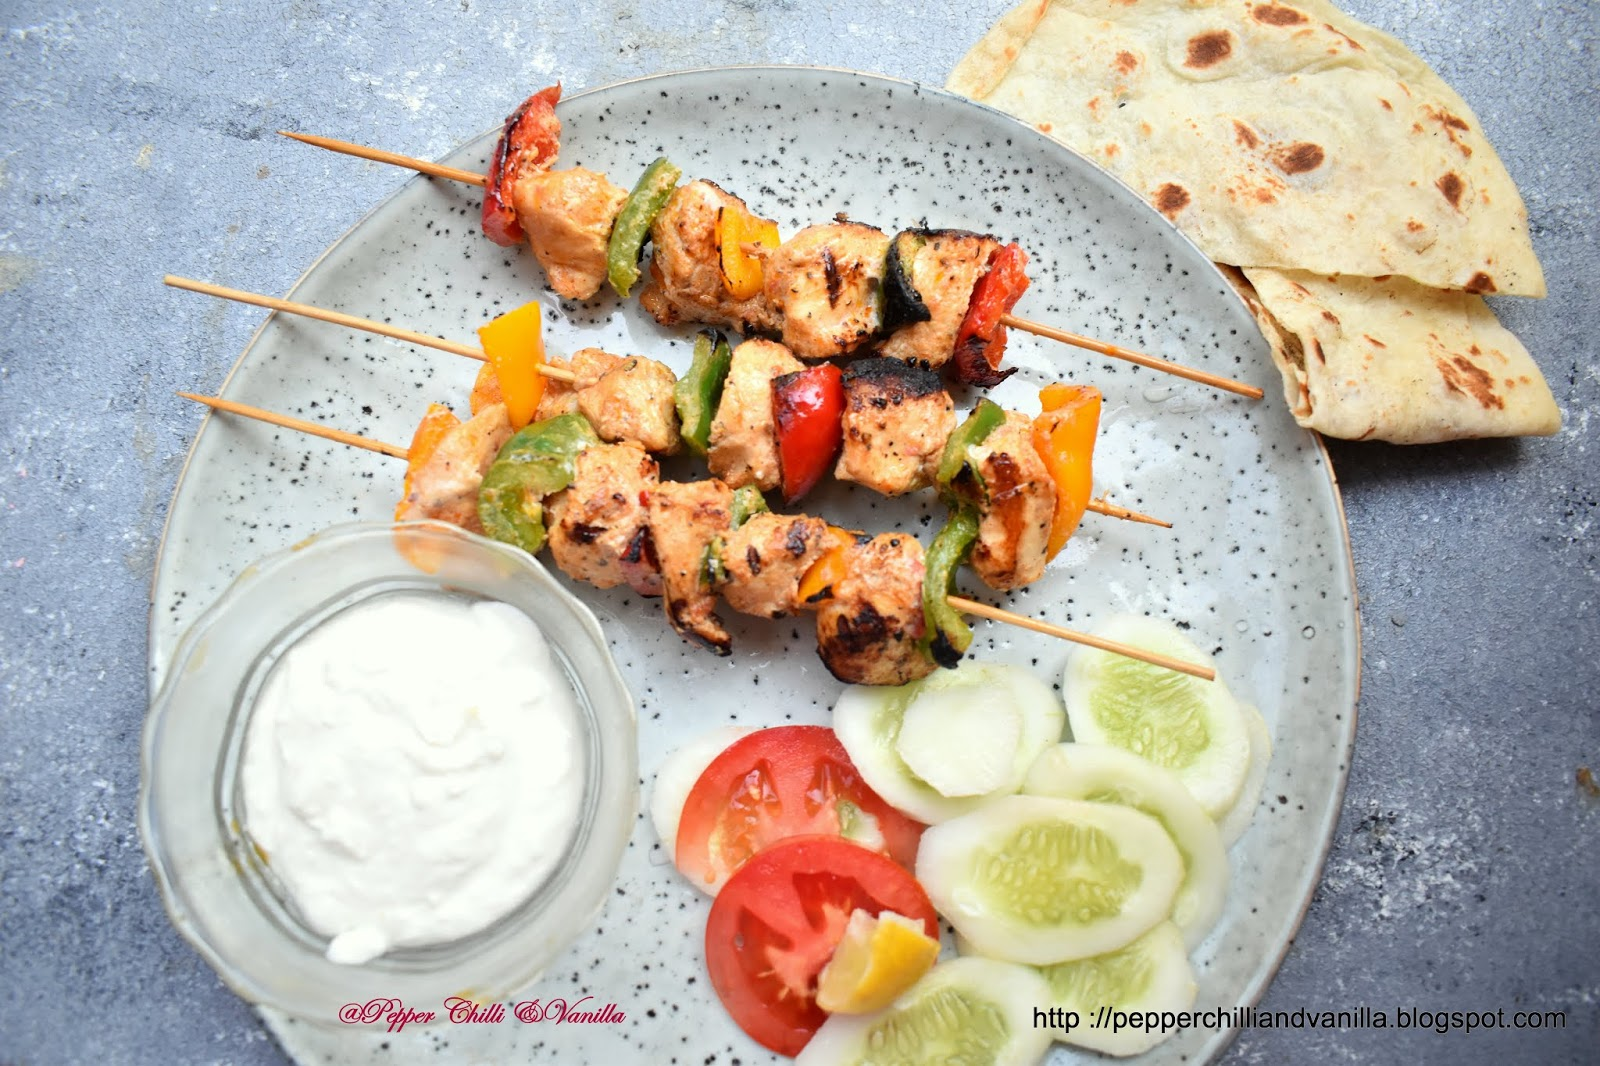 arabian grill chicken skewer